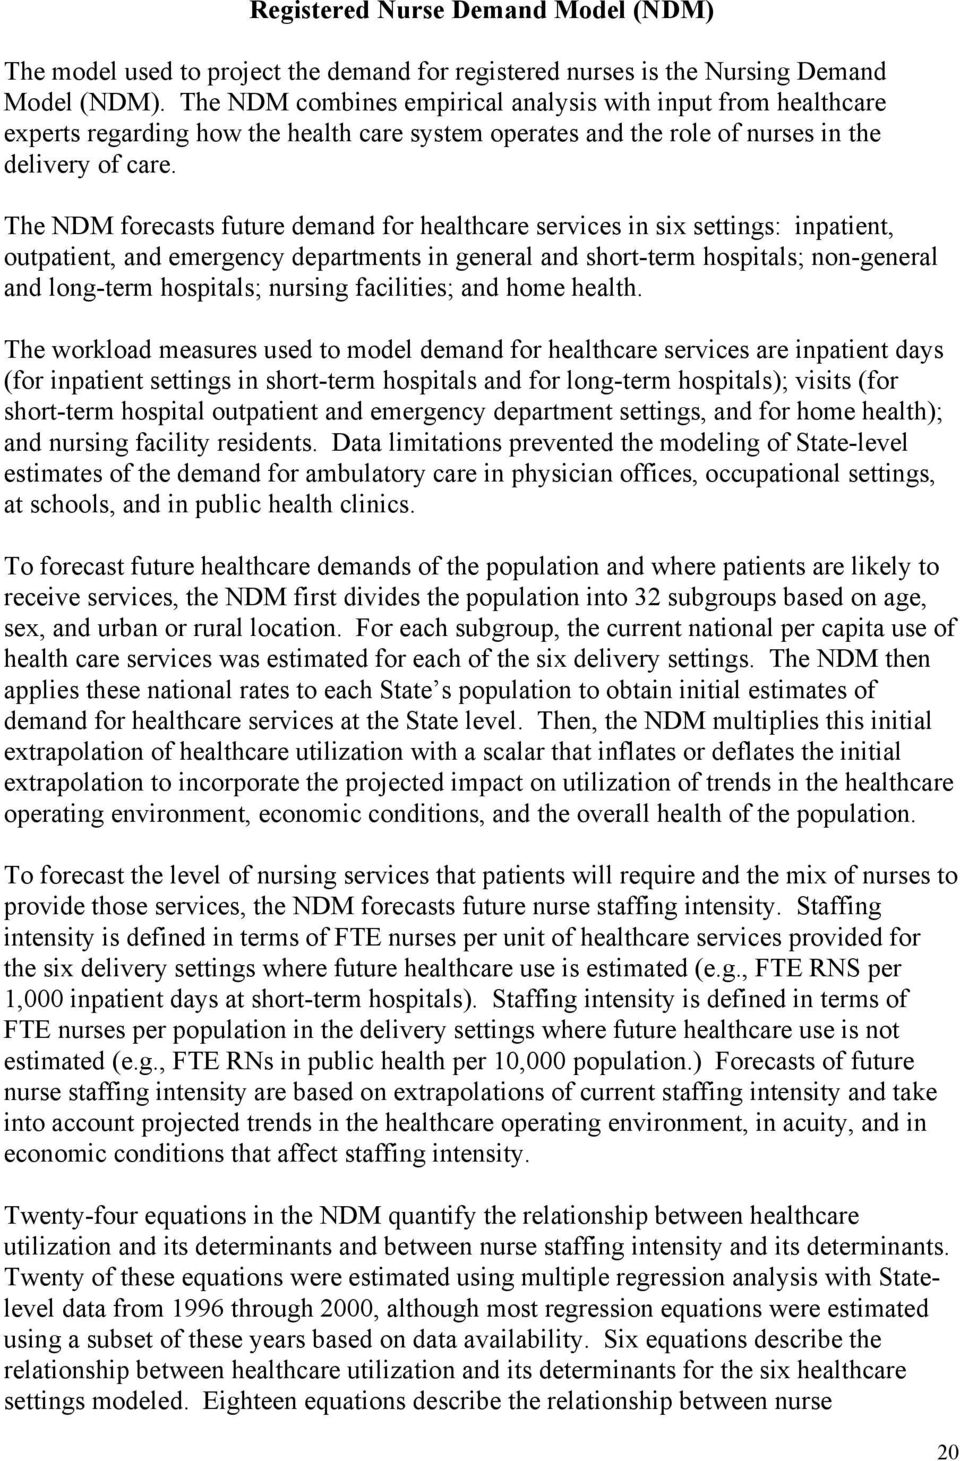 The NDM forecasts future demand for healthcare services in six settings: inpatient, outpatient, and emergency departments in general and short-term hospitals; non-general and long-term hospitals;